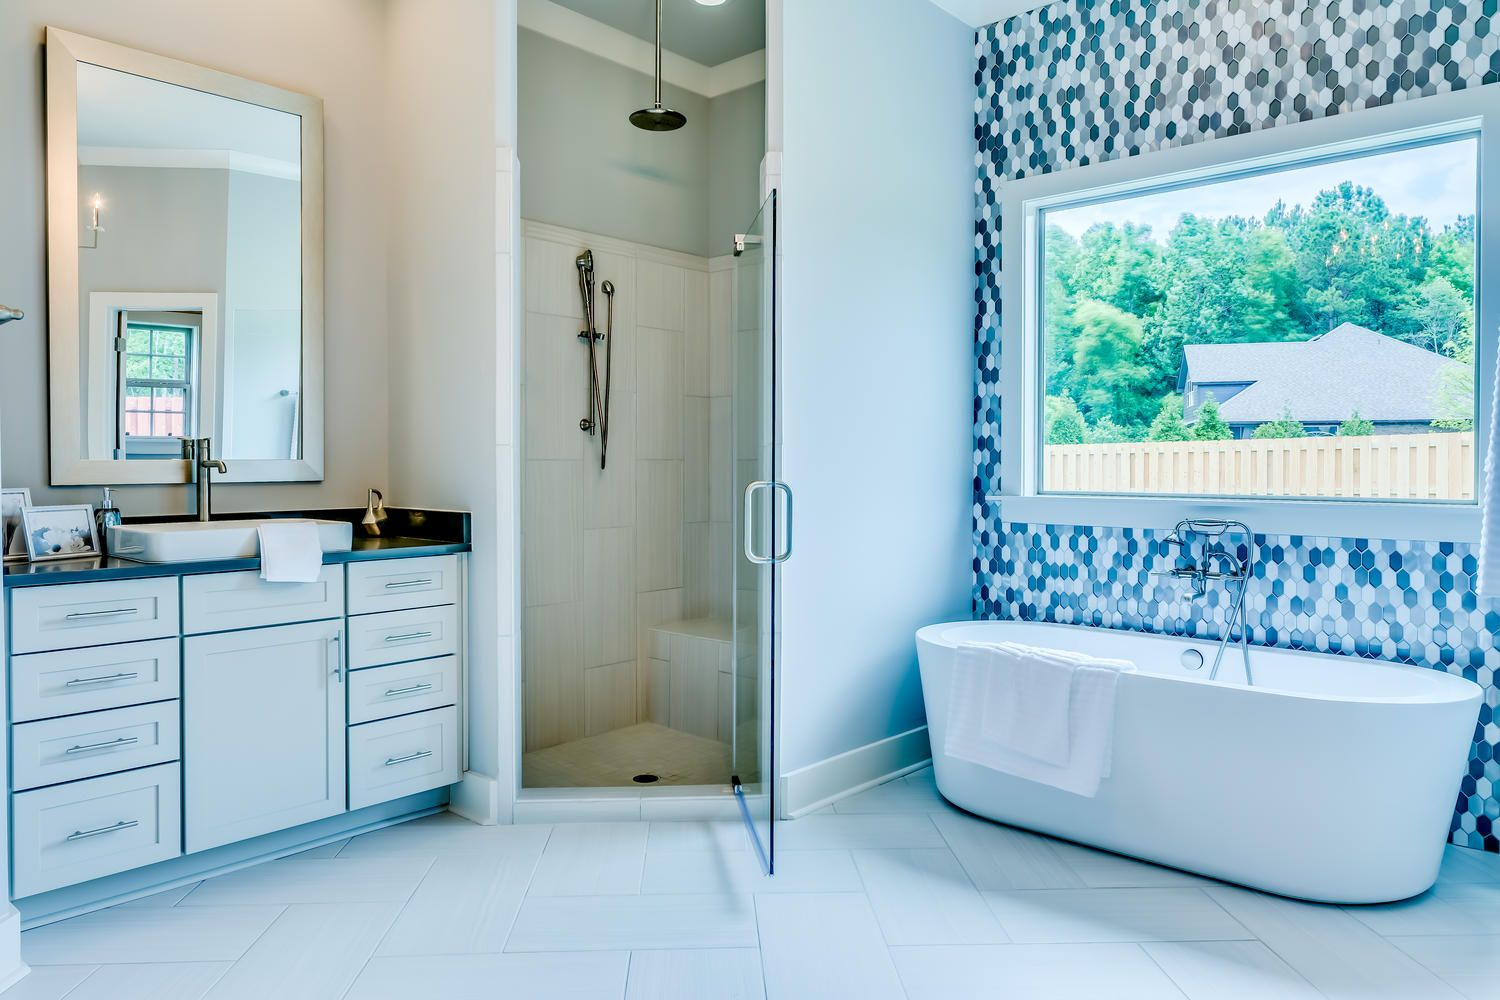 Stunning bathroom with light grey walls along with a spacious vanity ...